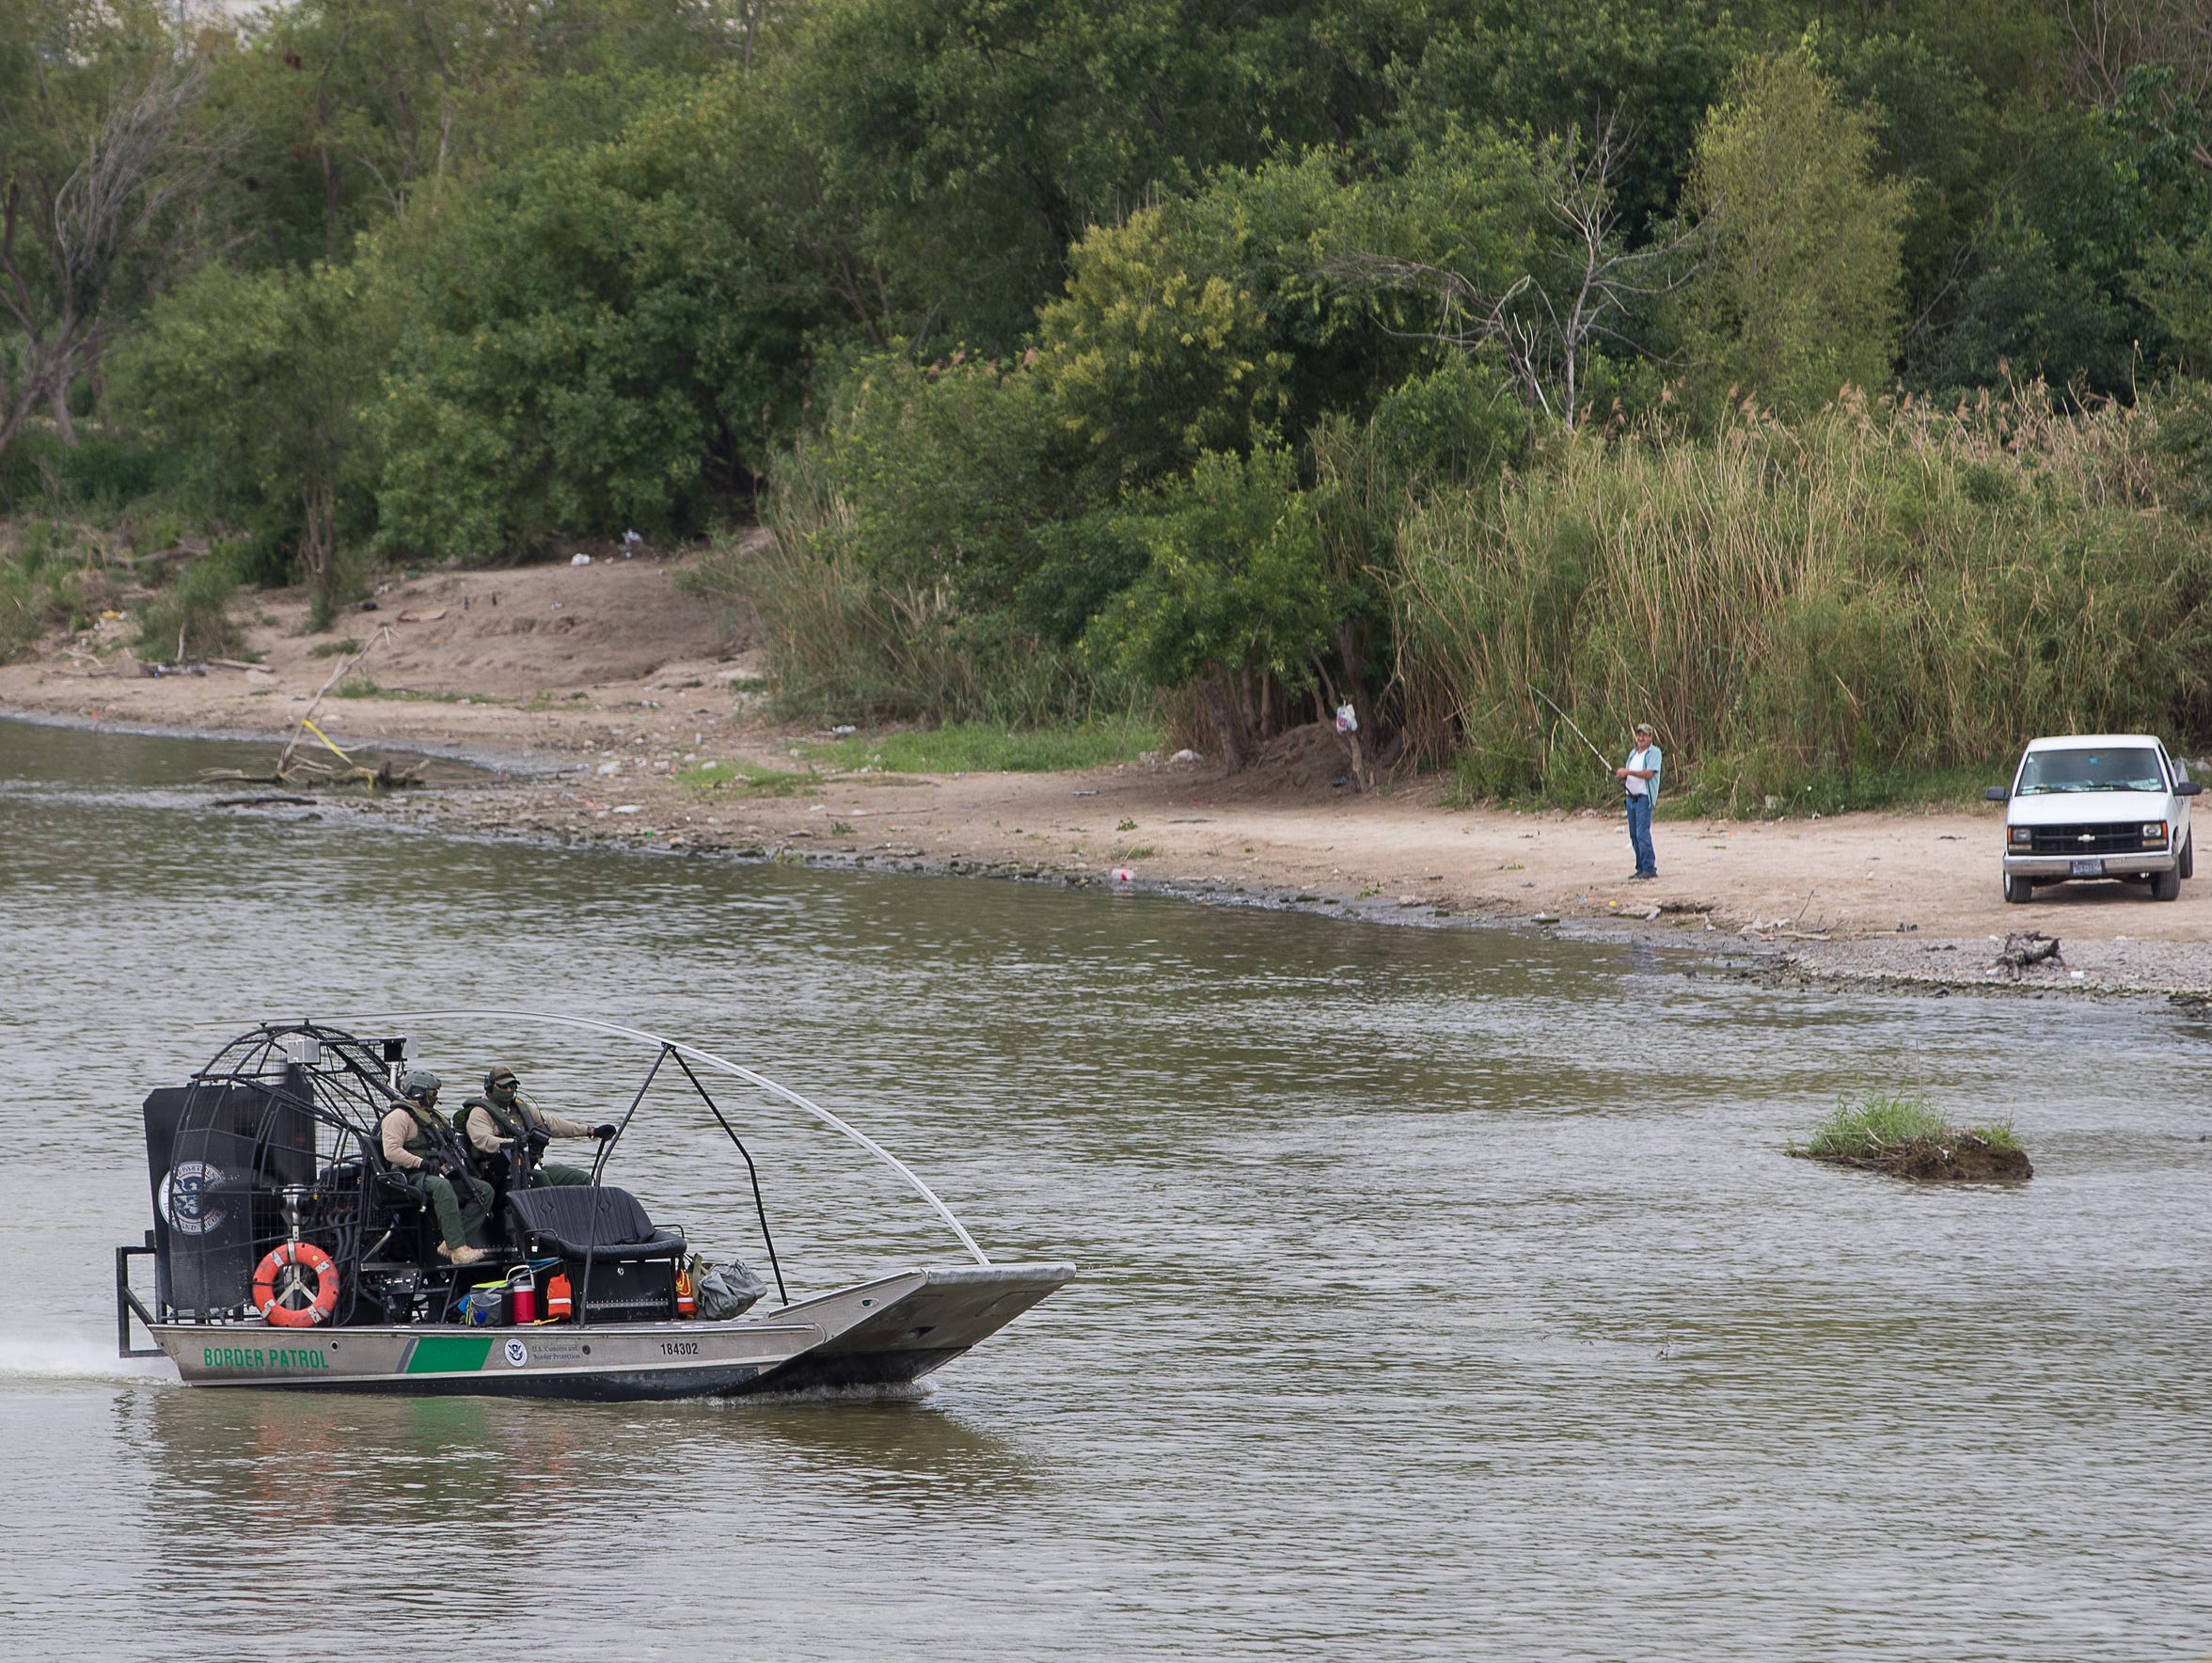 A United States Border Patrol air boat travels on the Rio Grande along the United States Mexico border in Laredo, Texas on April 9, 2018.